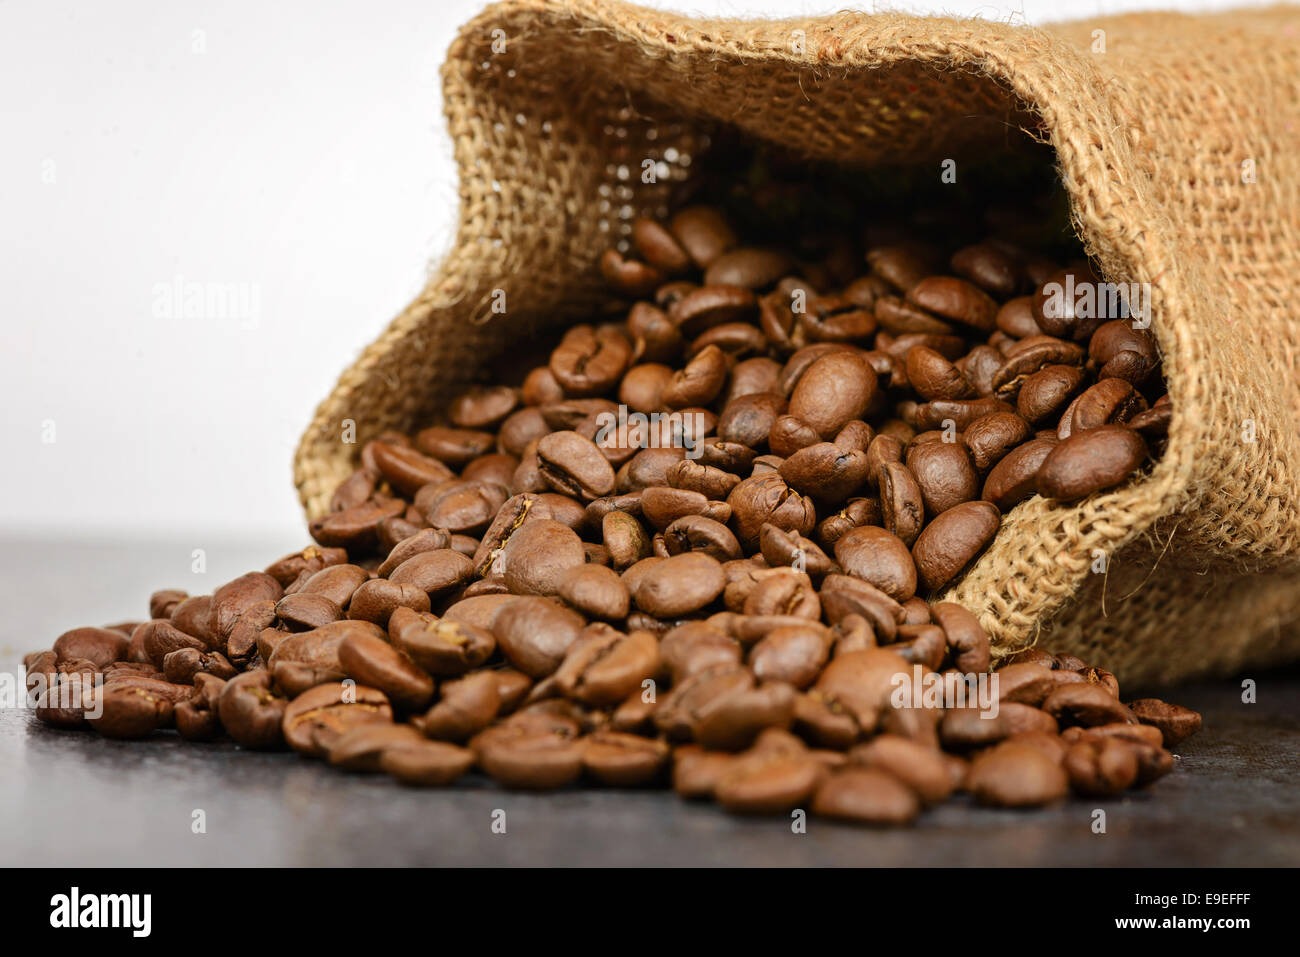 Studio shot of coffee beans in a bag - Stock Image